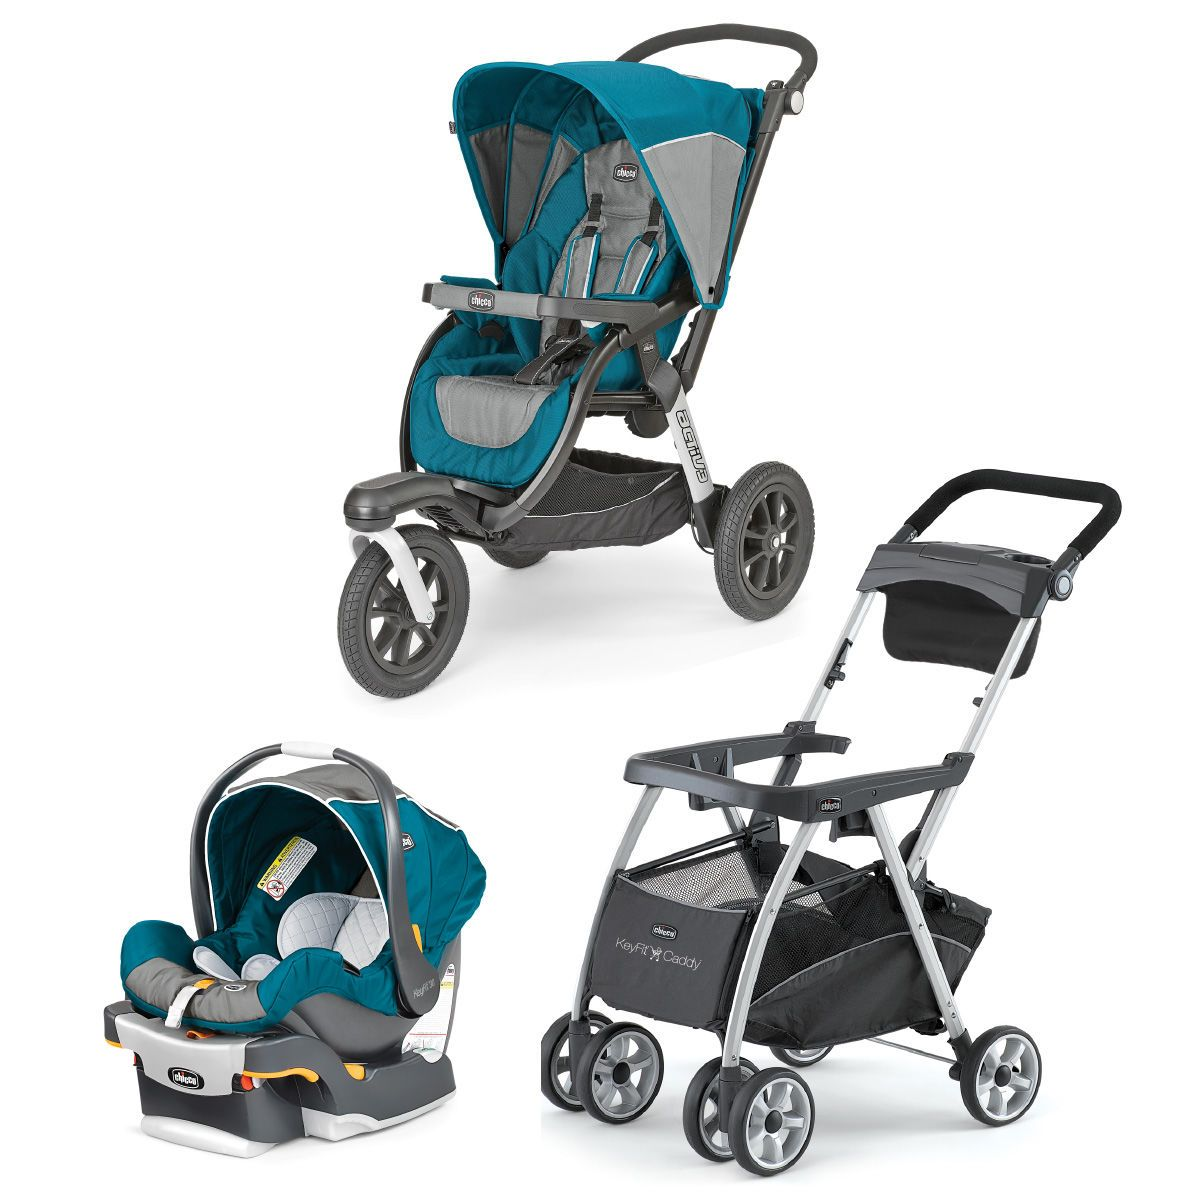 Graco Views Stroller Travel System with SnugRide 35 LX